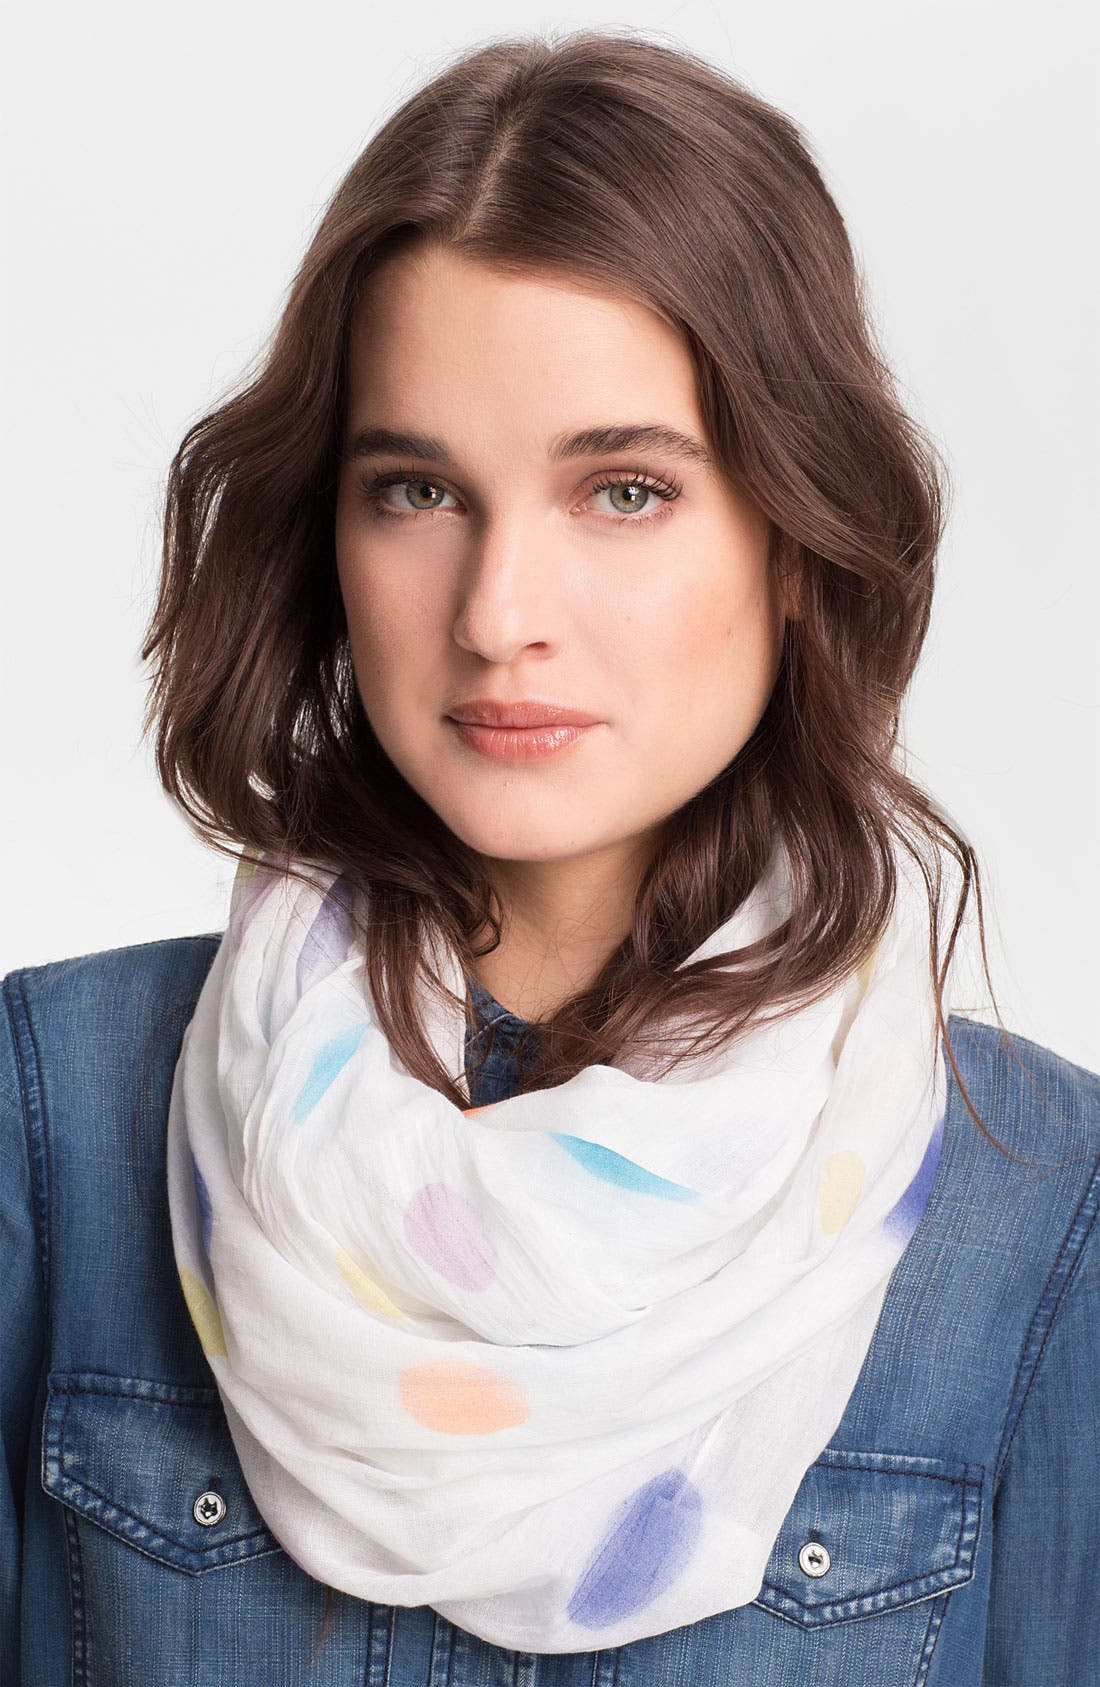 Alternate Image 1 Selected - Made of Me Accessories 'Bright Lights Loop' Infinity Scarf